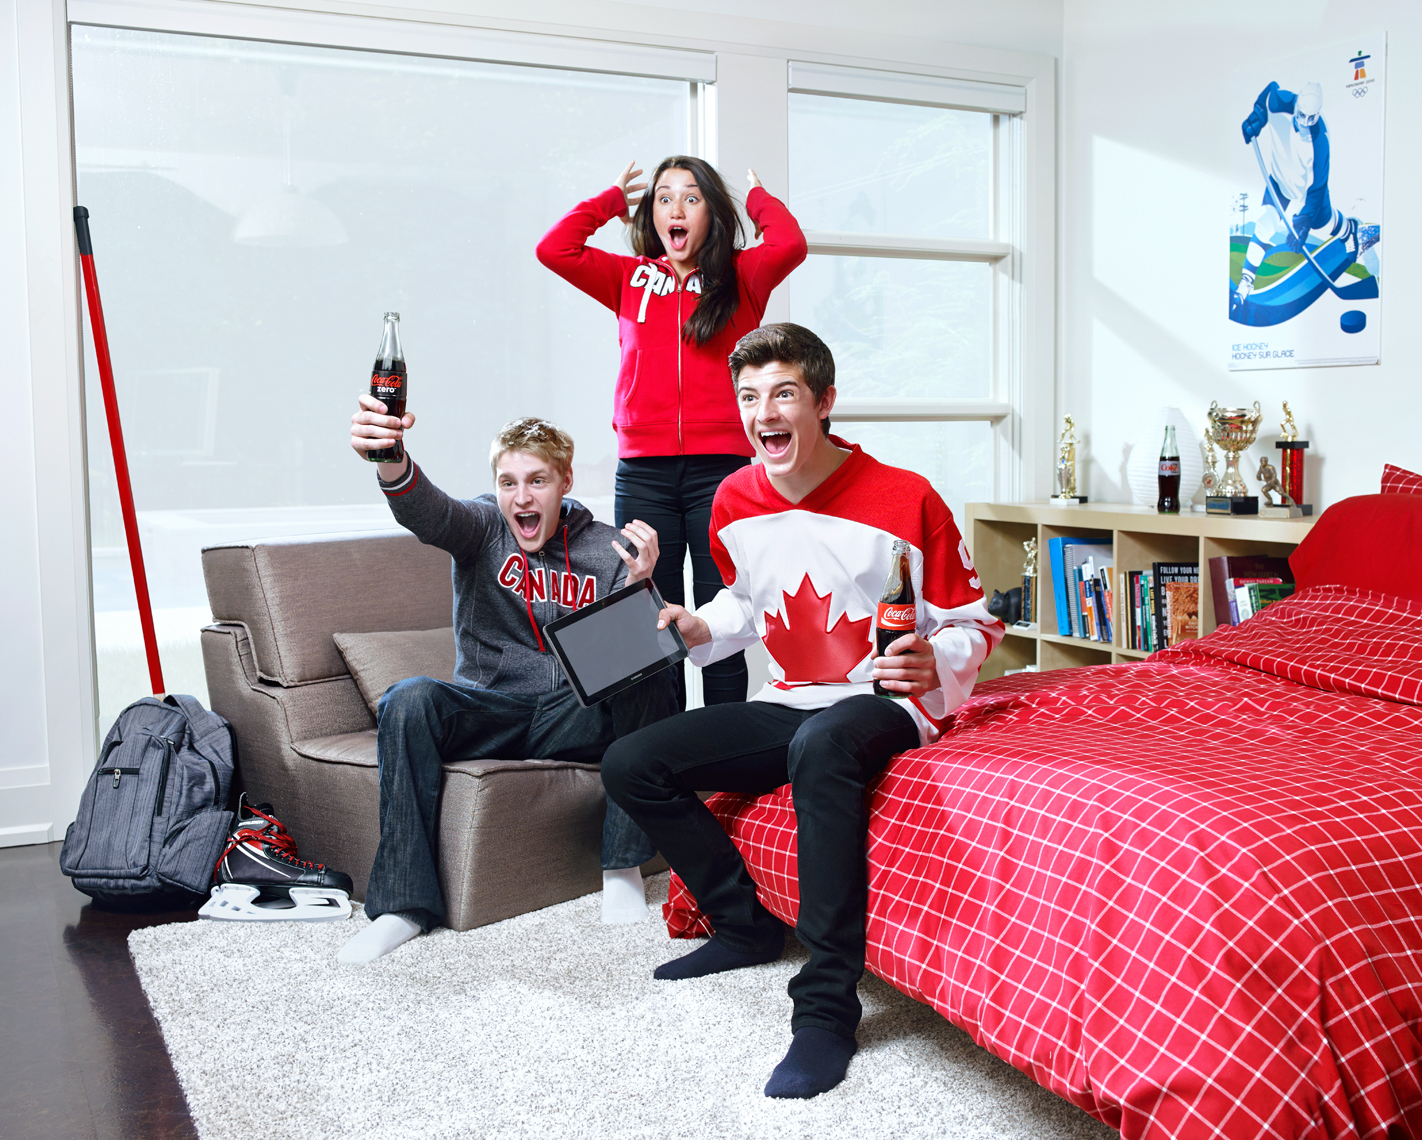 Coke_Lifestyle_Teens-03